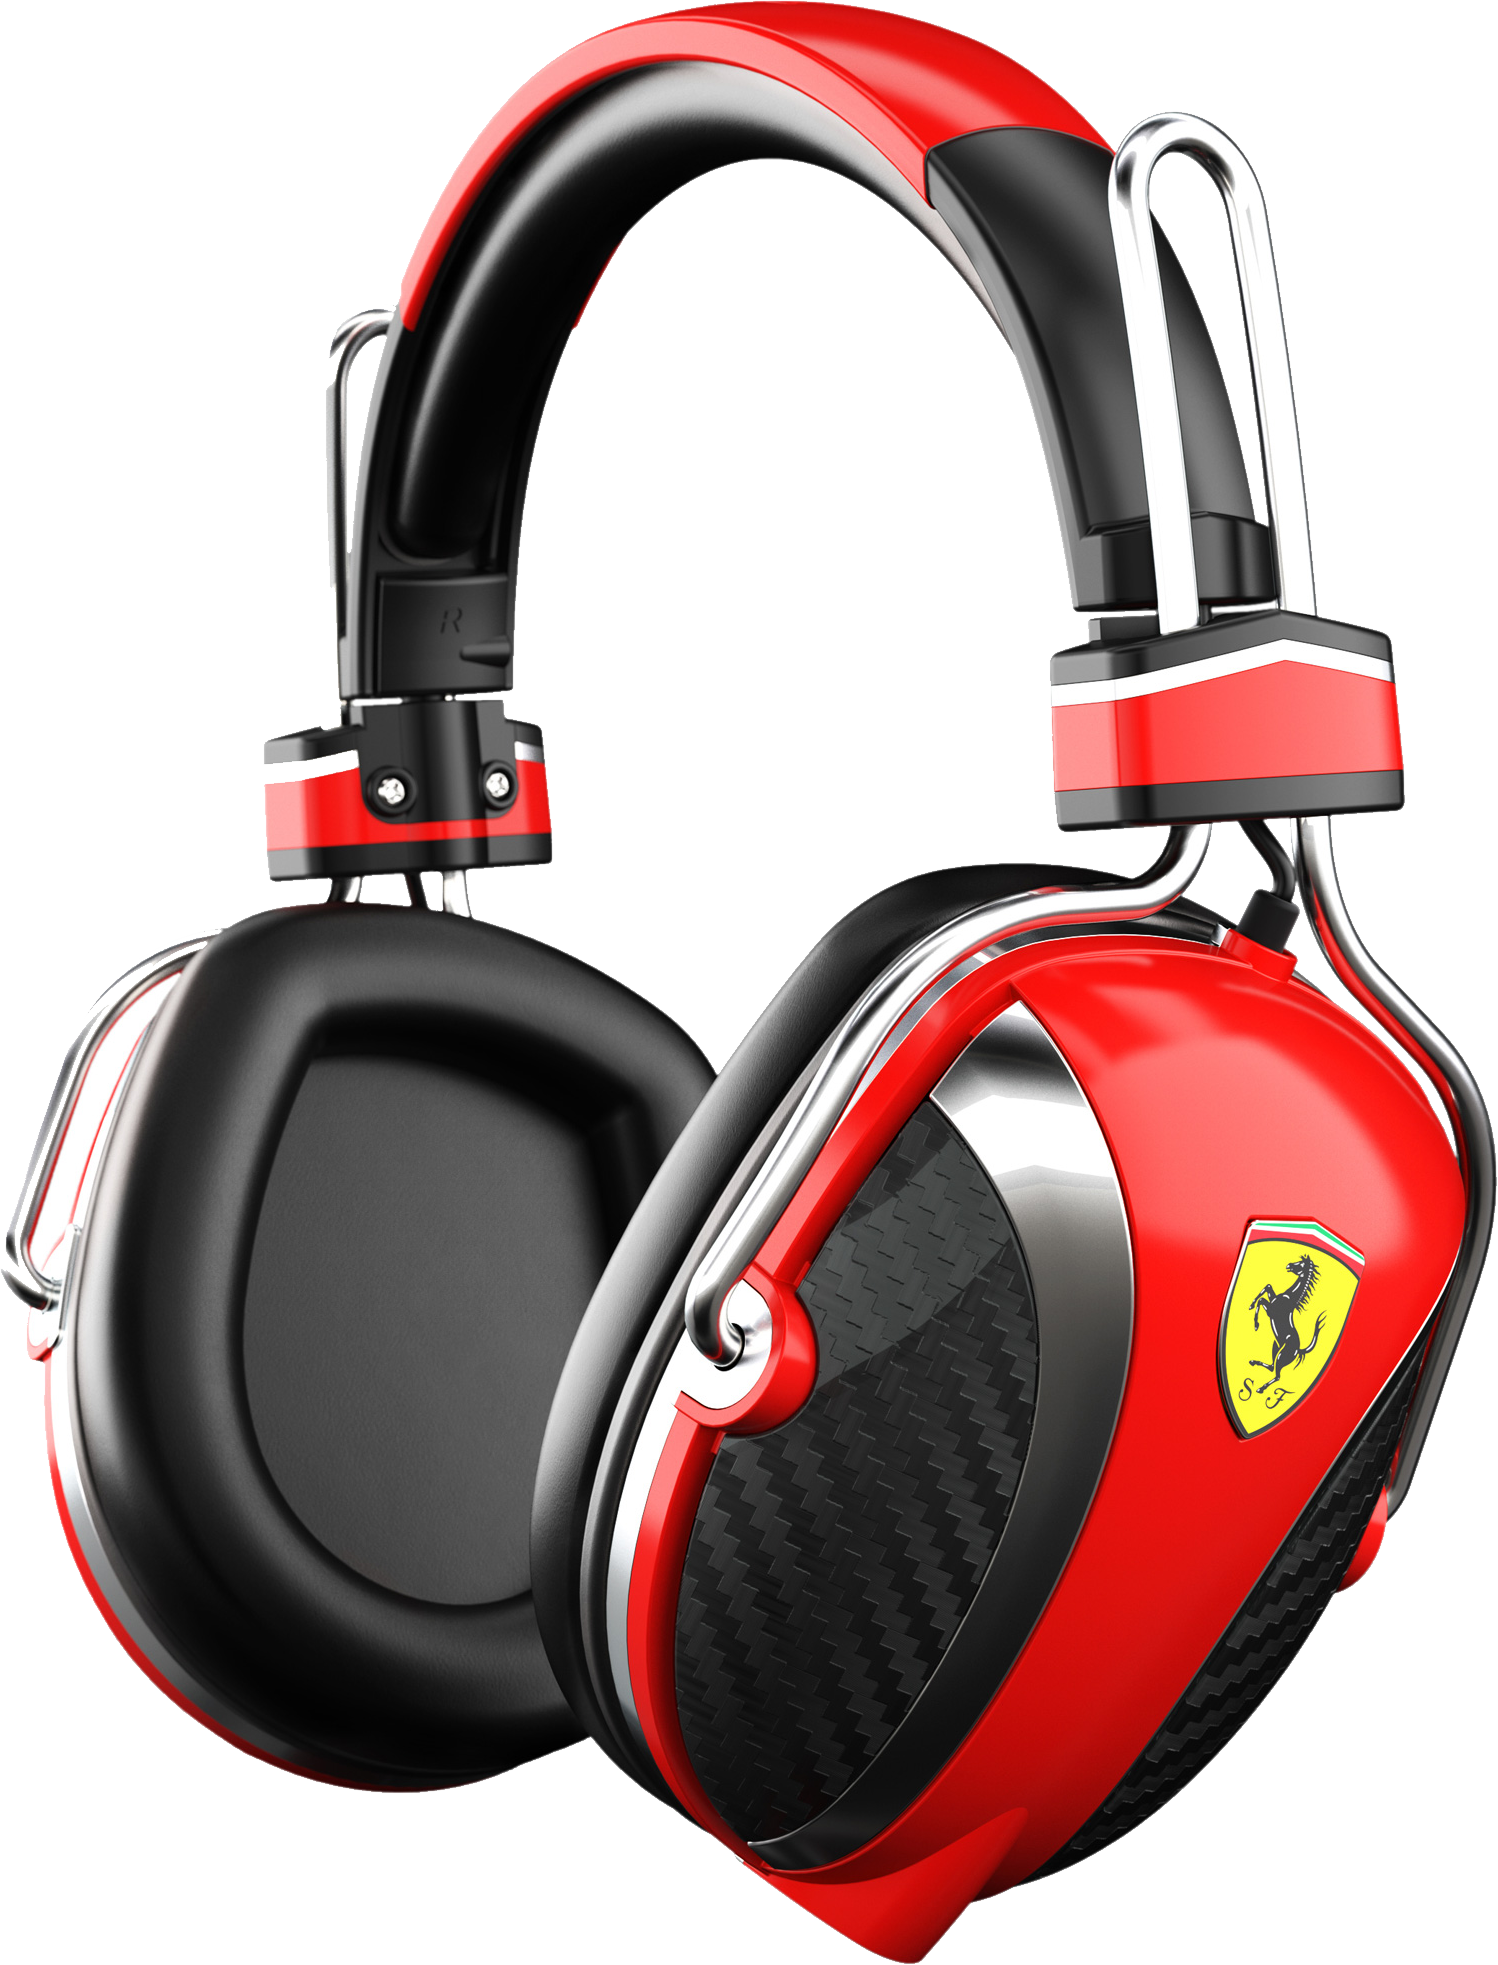 Headphones clipart file. Png images free download